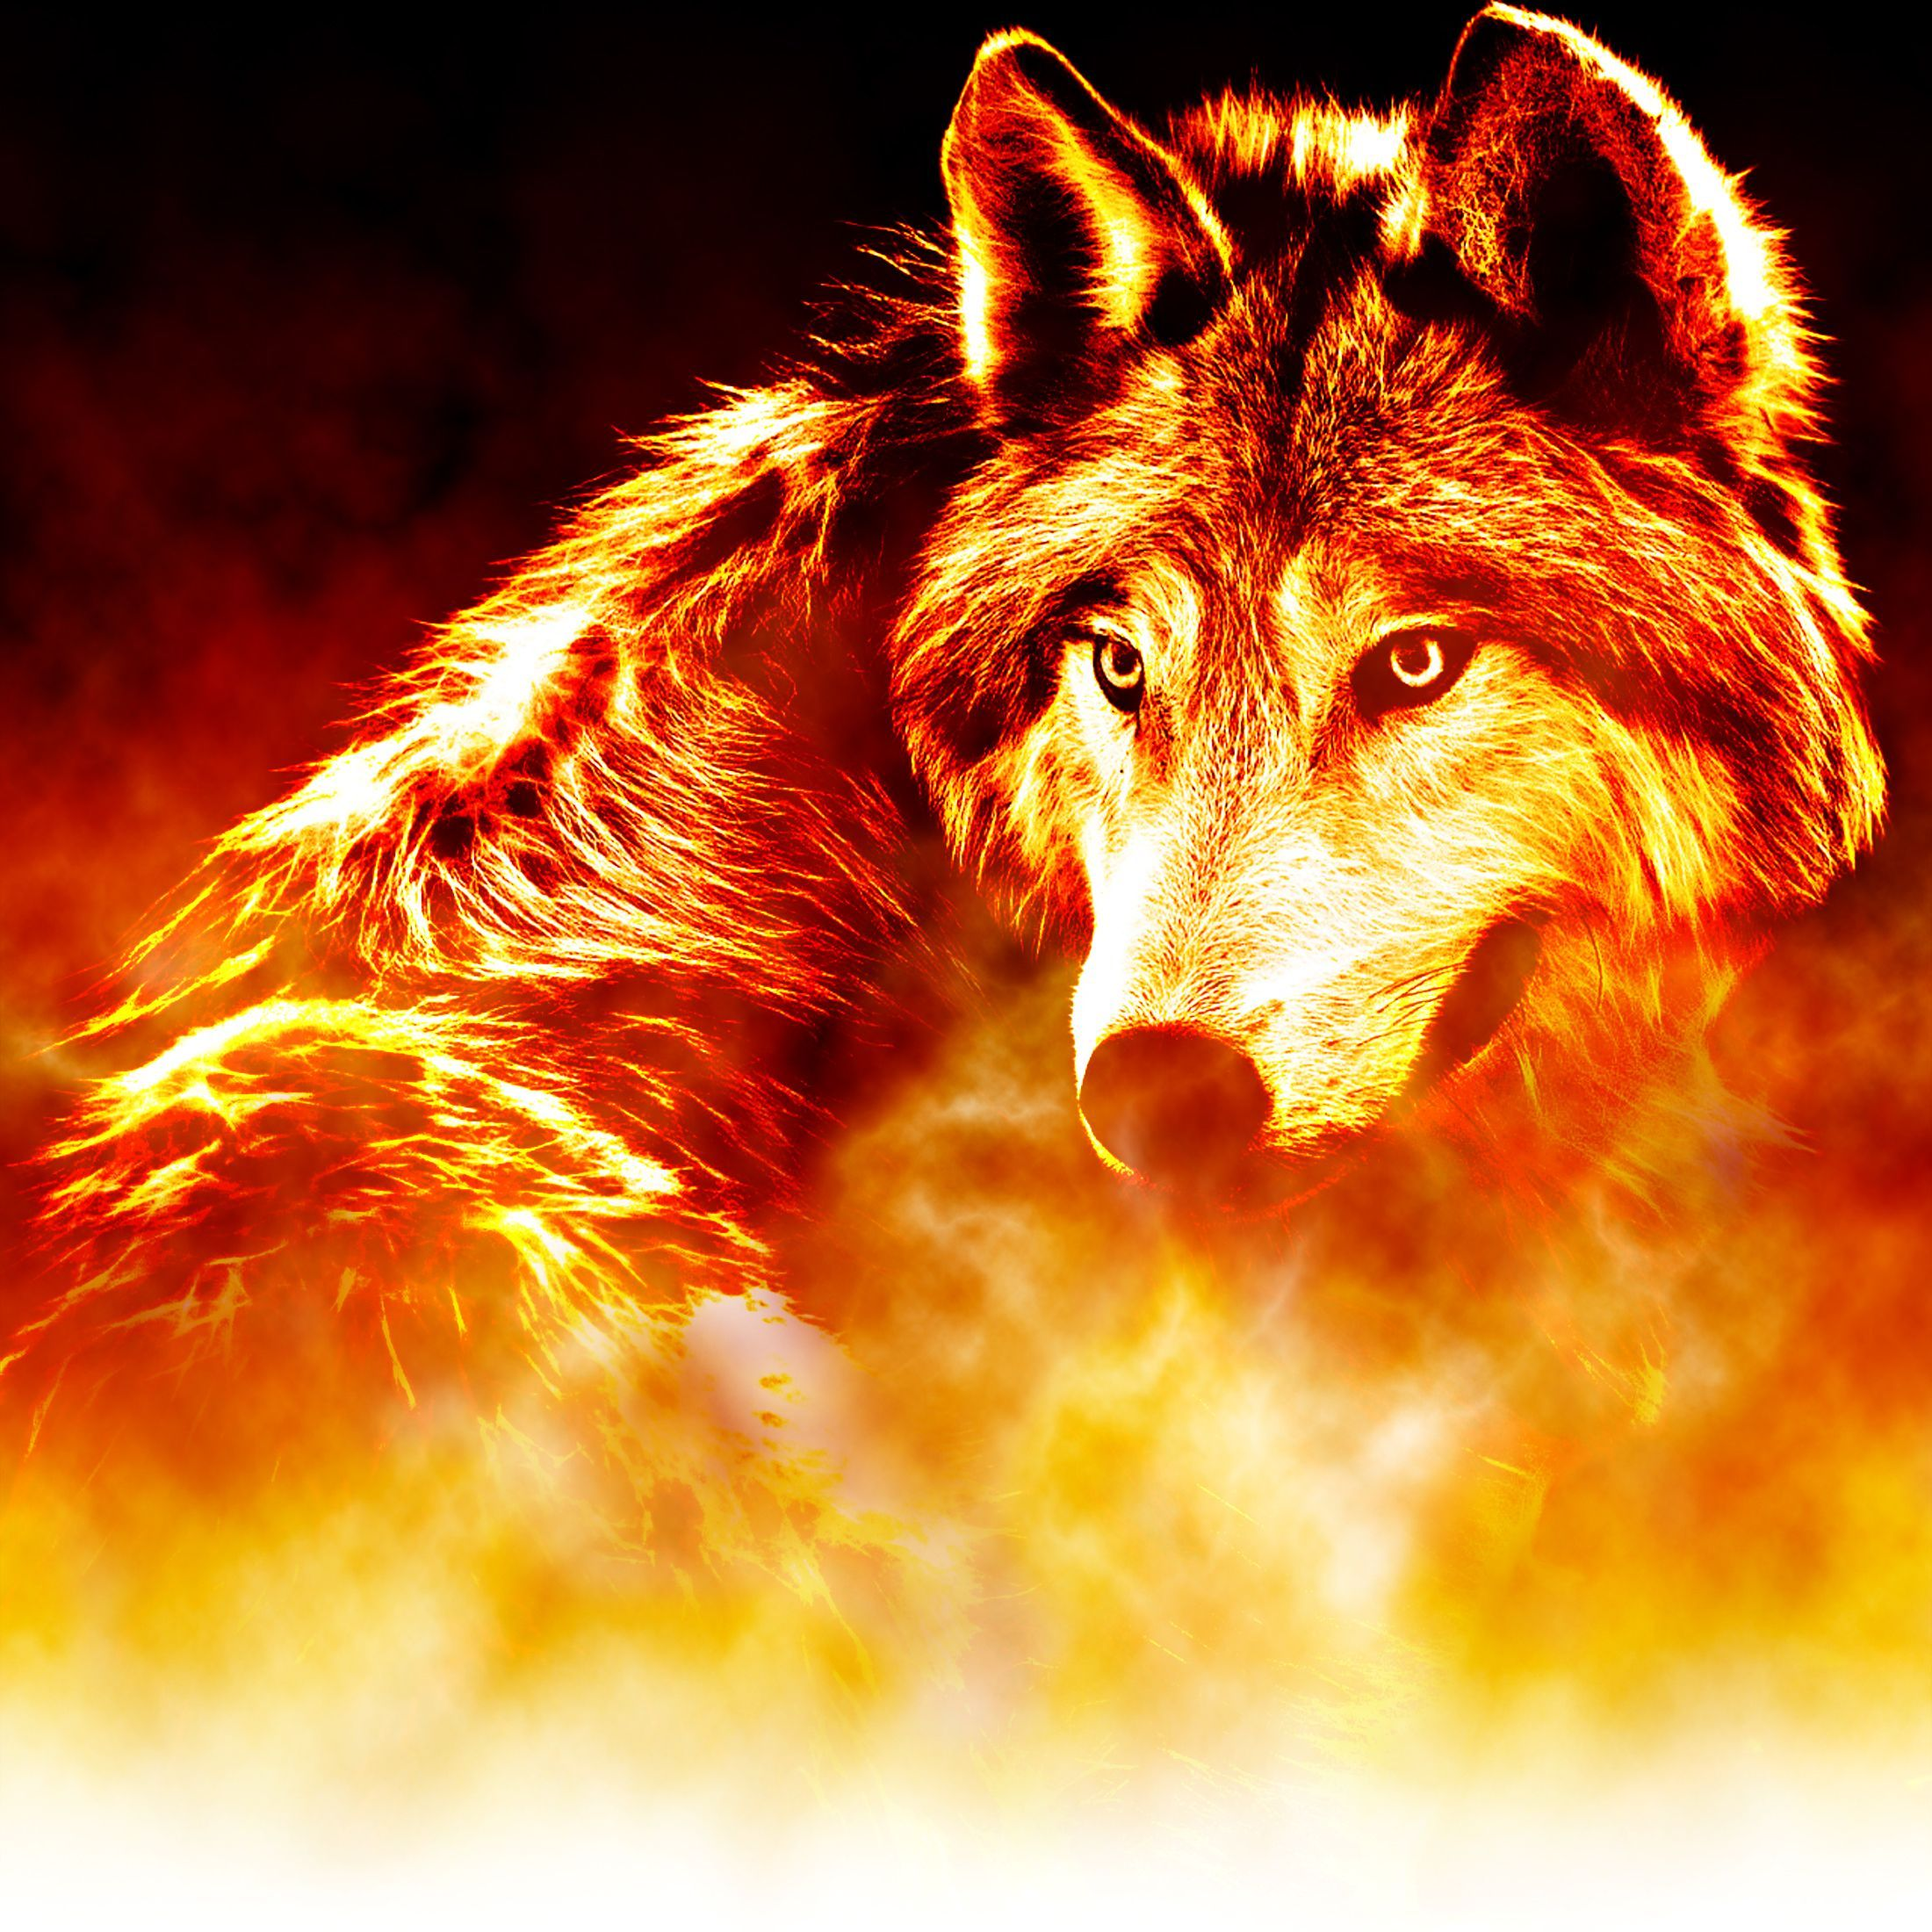 Epic Fire Wolf Wallpaper More At Https Www Ohiocan Org Epic Fire Wolf Wallpaper Html Wolf Wallpaper Smoke Art Ice Wolf Wallpaper